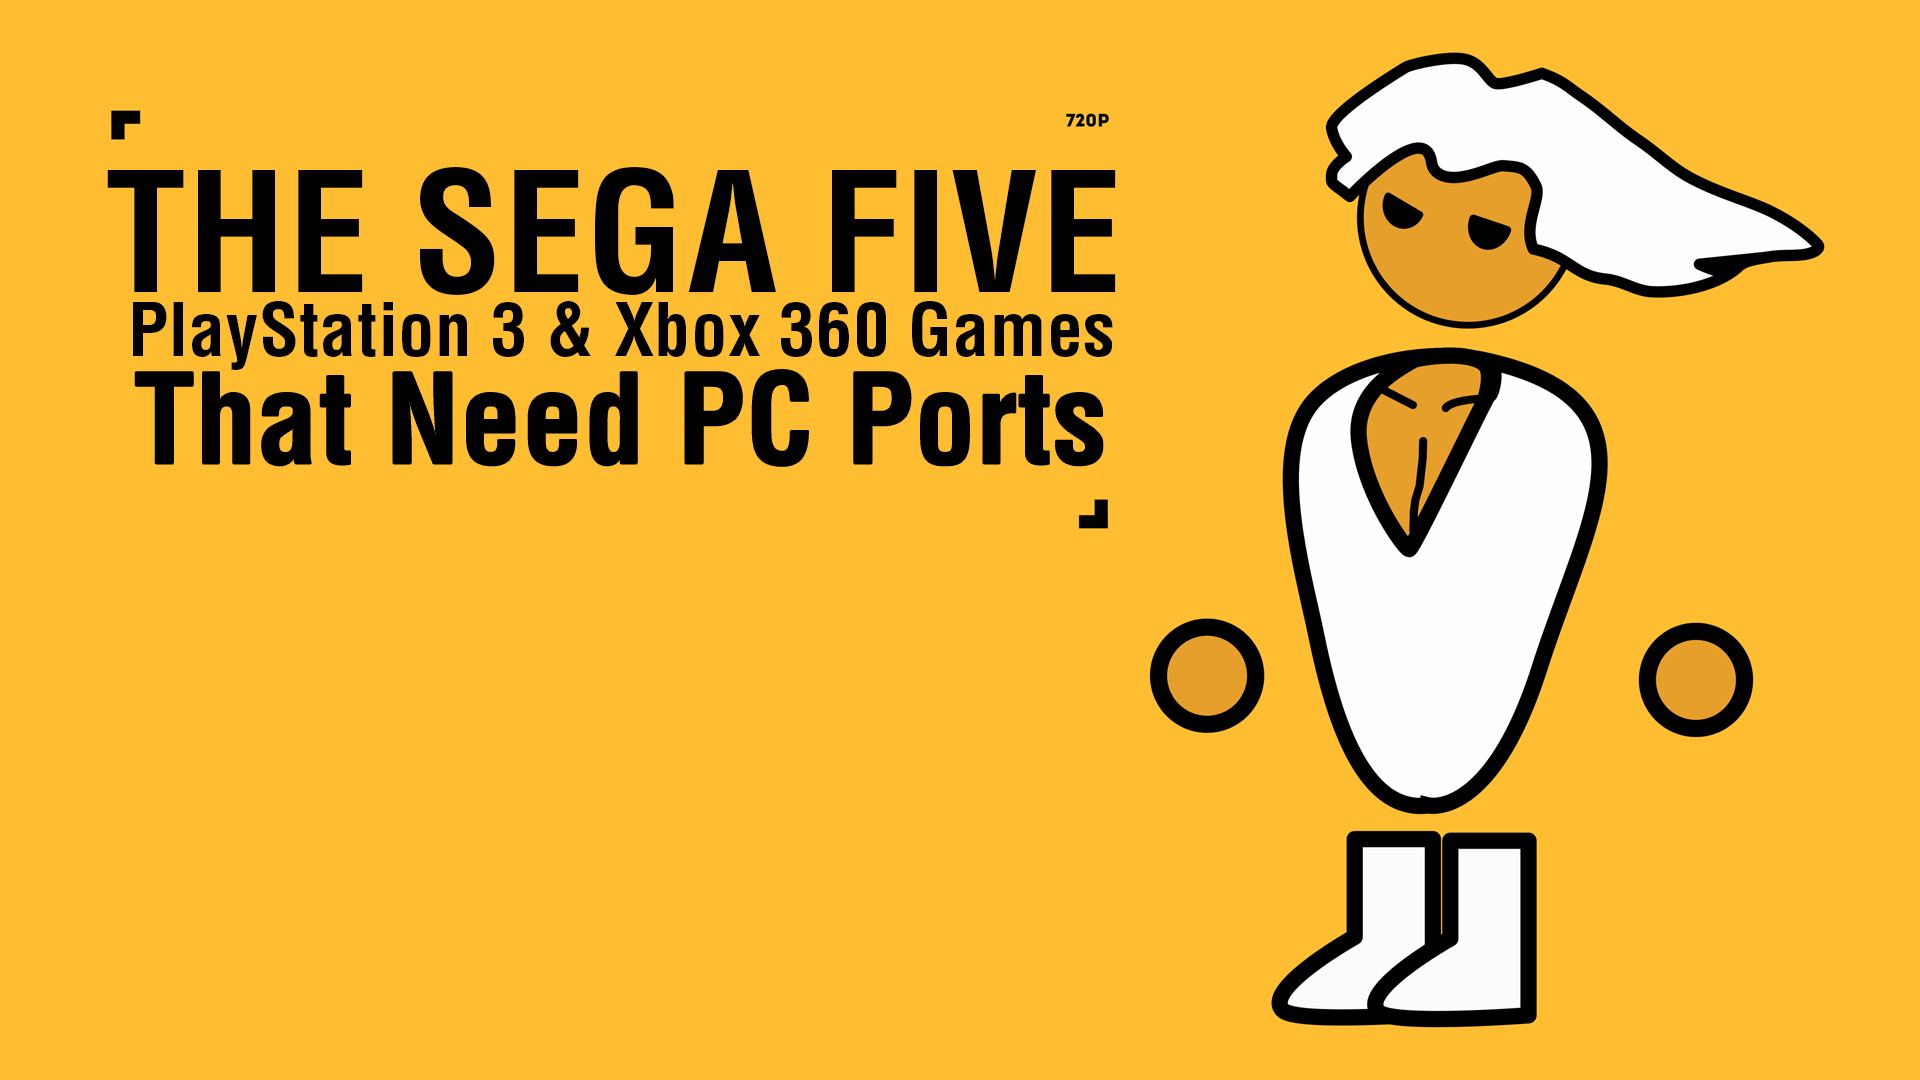 The SEGA Five: PlayStation 3 & Xbox 360 Games That Need PC Ports